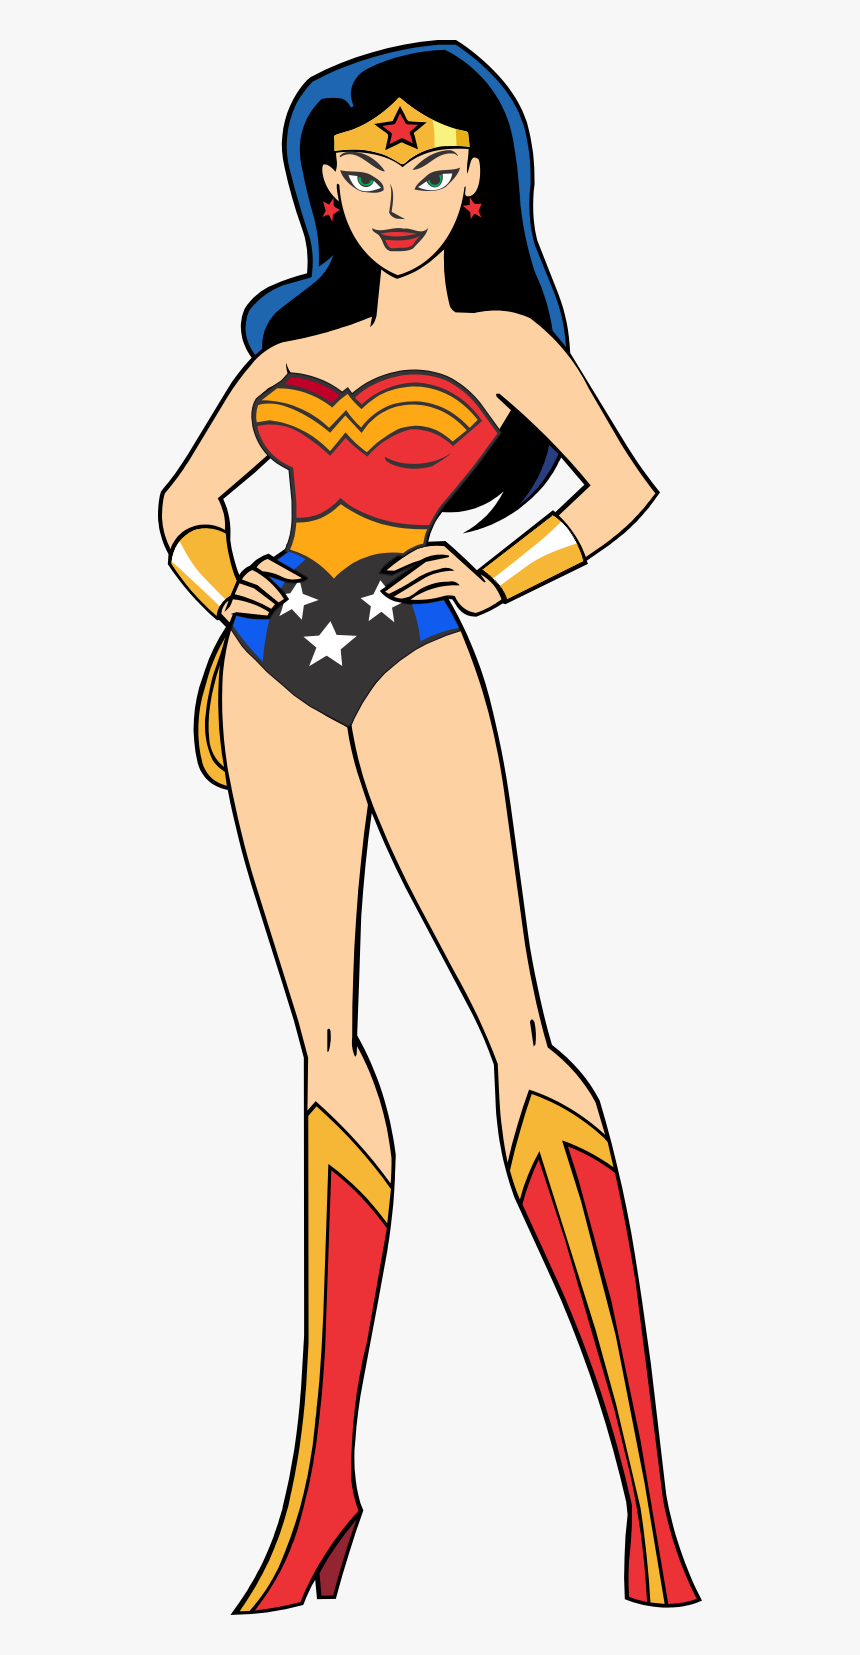 Clip Art Superman Wonder Woman Superhero Wonder Woman Clipart Hd Hd Png Download Transparent Png Image Pngitem